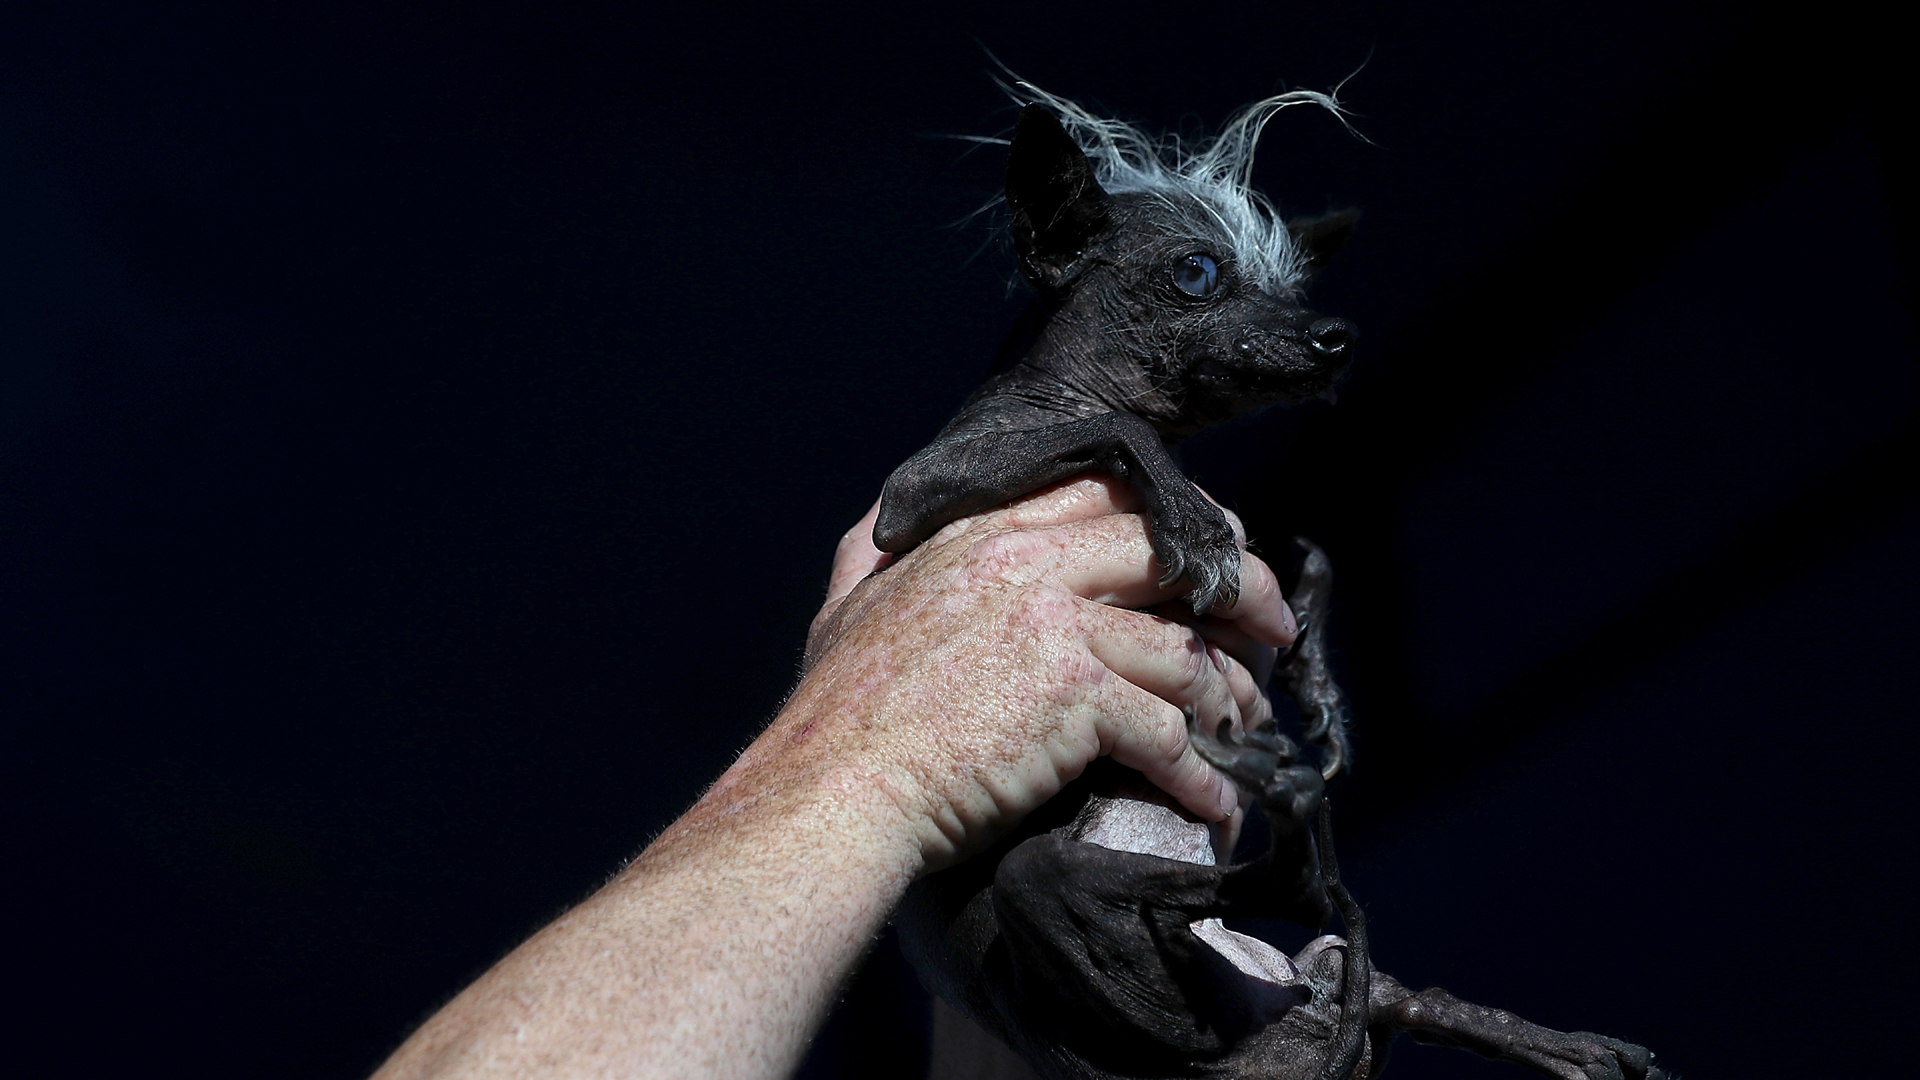 Sweepee Rambo, blind Chinese Crested dog, World's Ugliest Dog contest winner 201695048911-159532